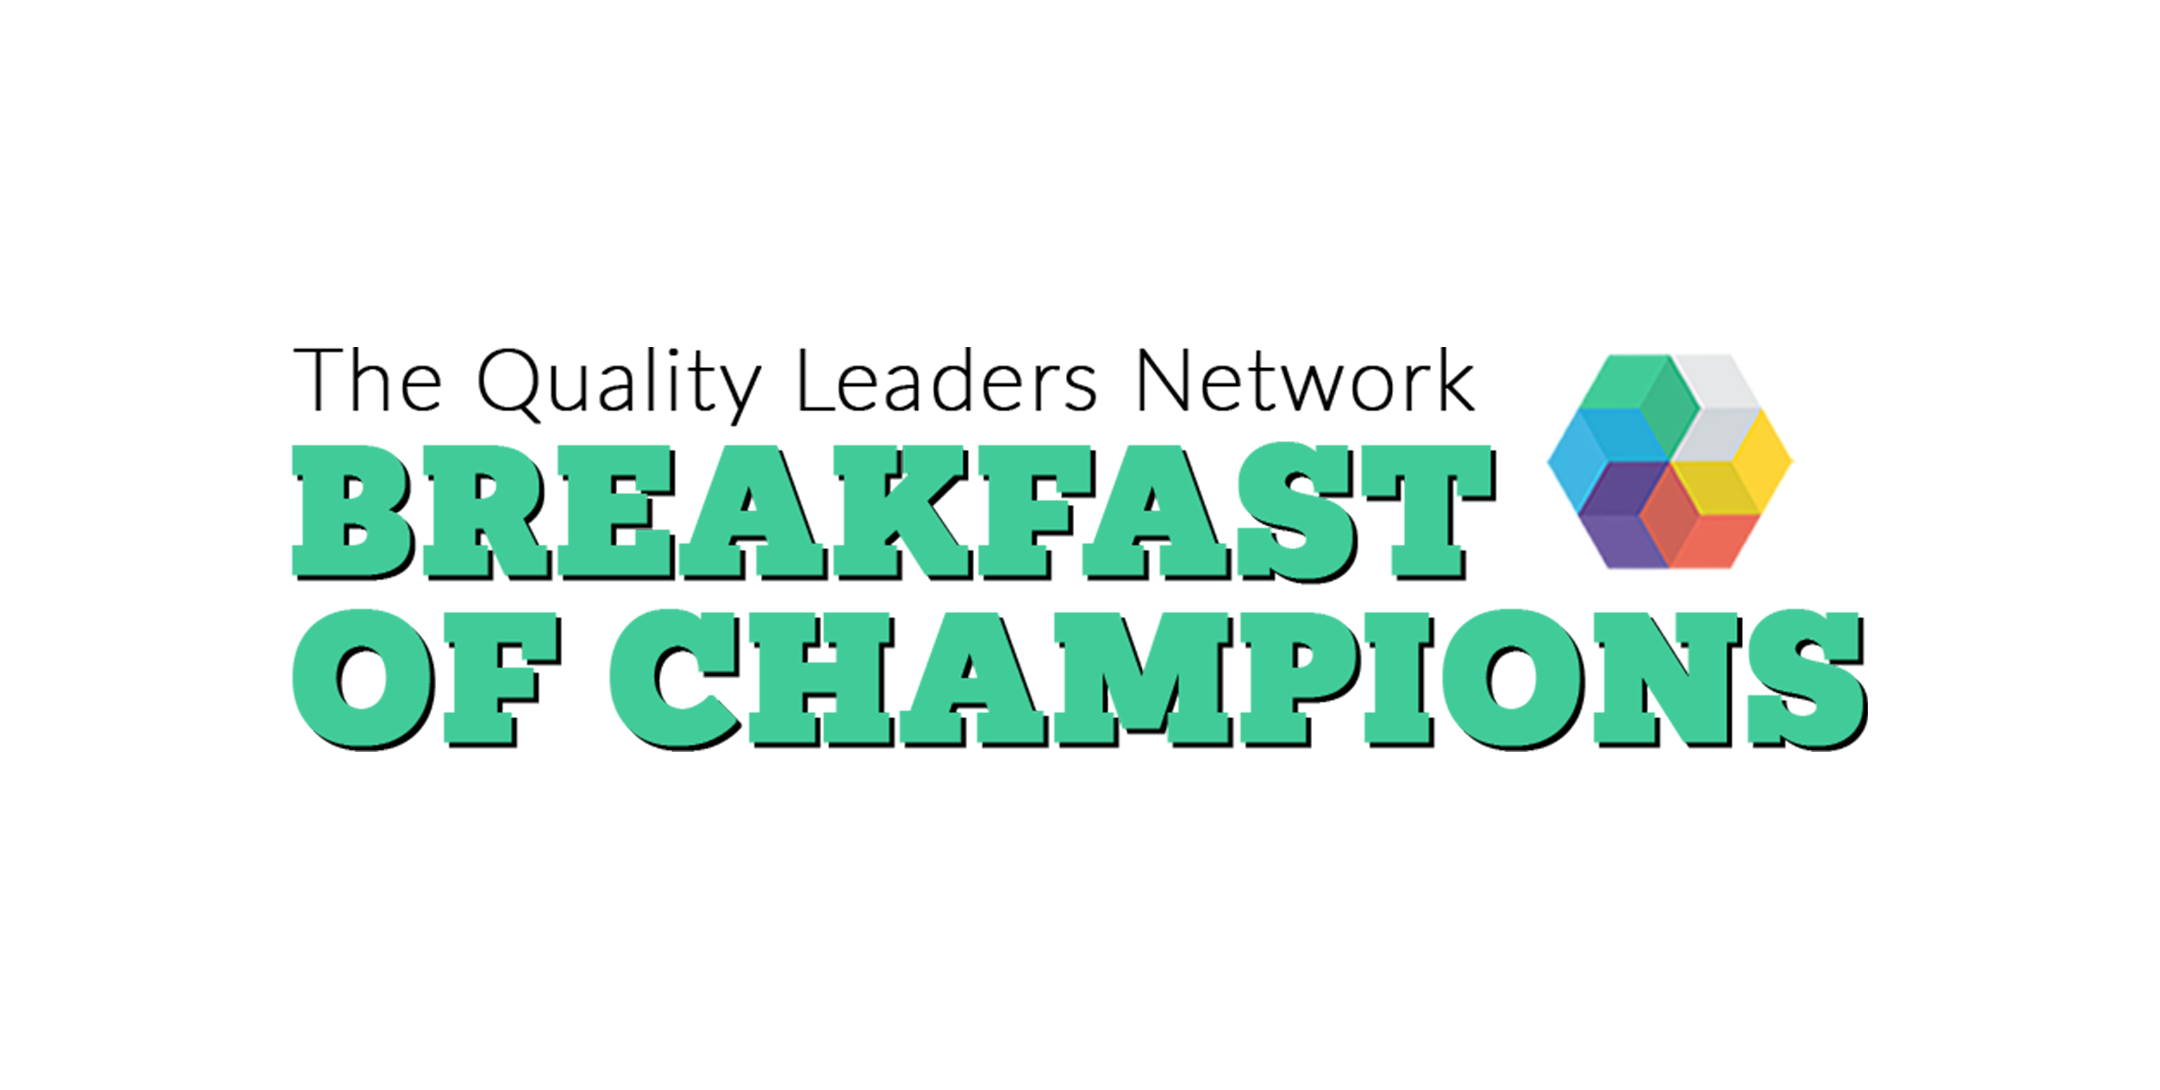 Quality Leaders Network 'Breakfast of Champions'